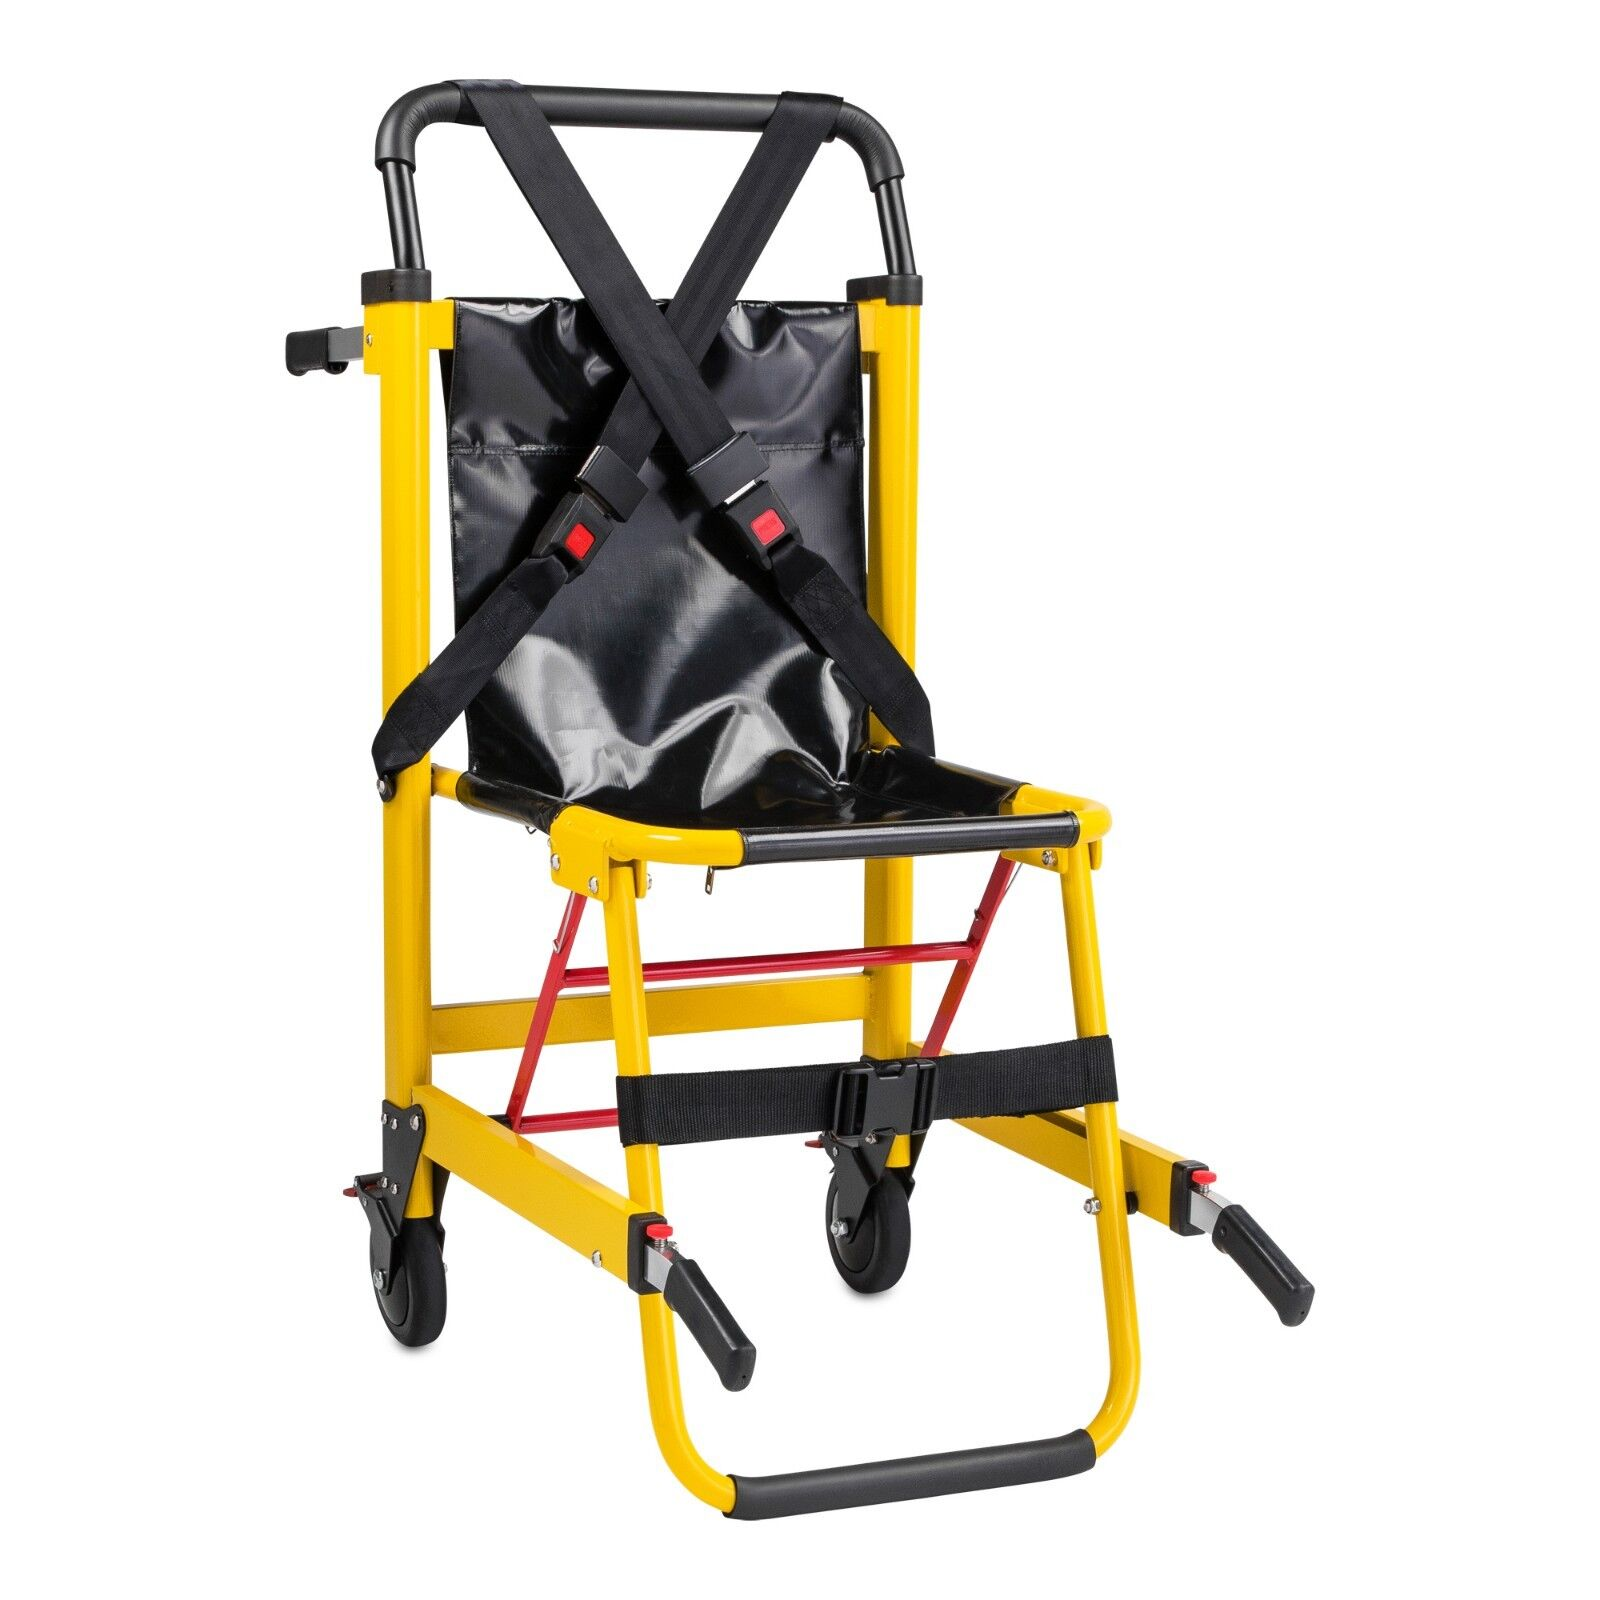 ems stair chair single bed medical emergency 2 wheel patient deluxe details about evacuation